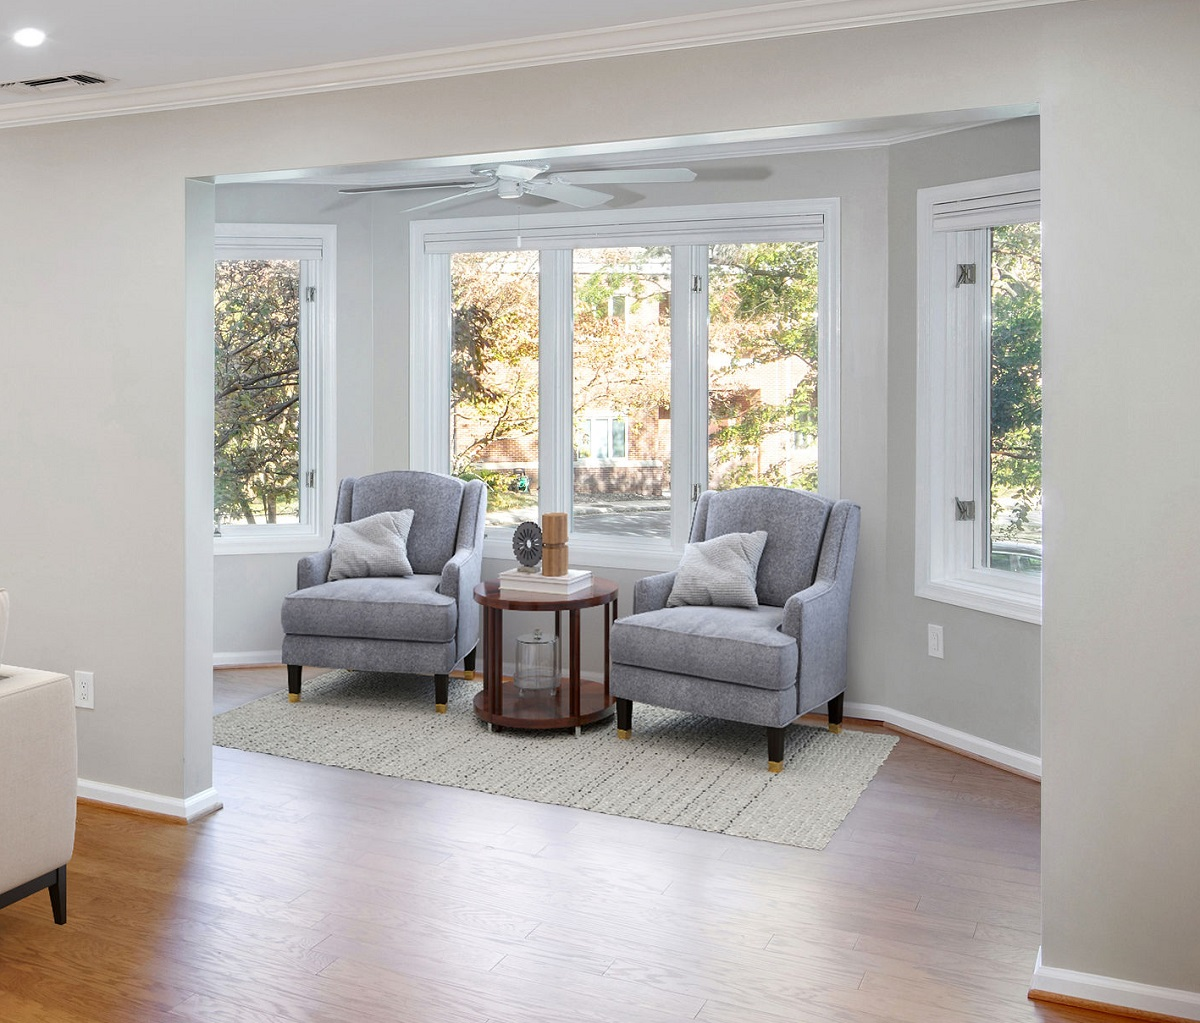 Sample of the Ginger Cove sunroom.